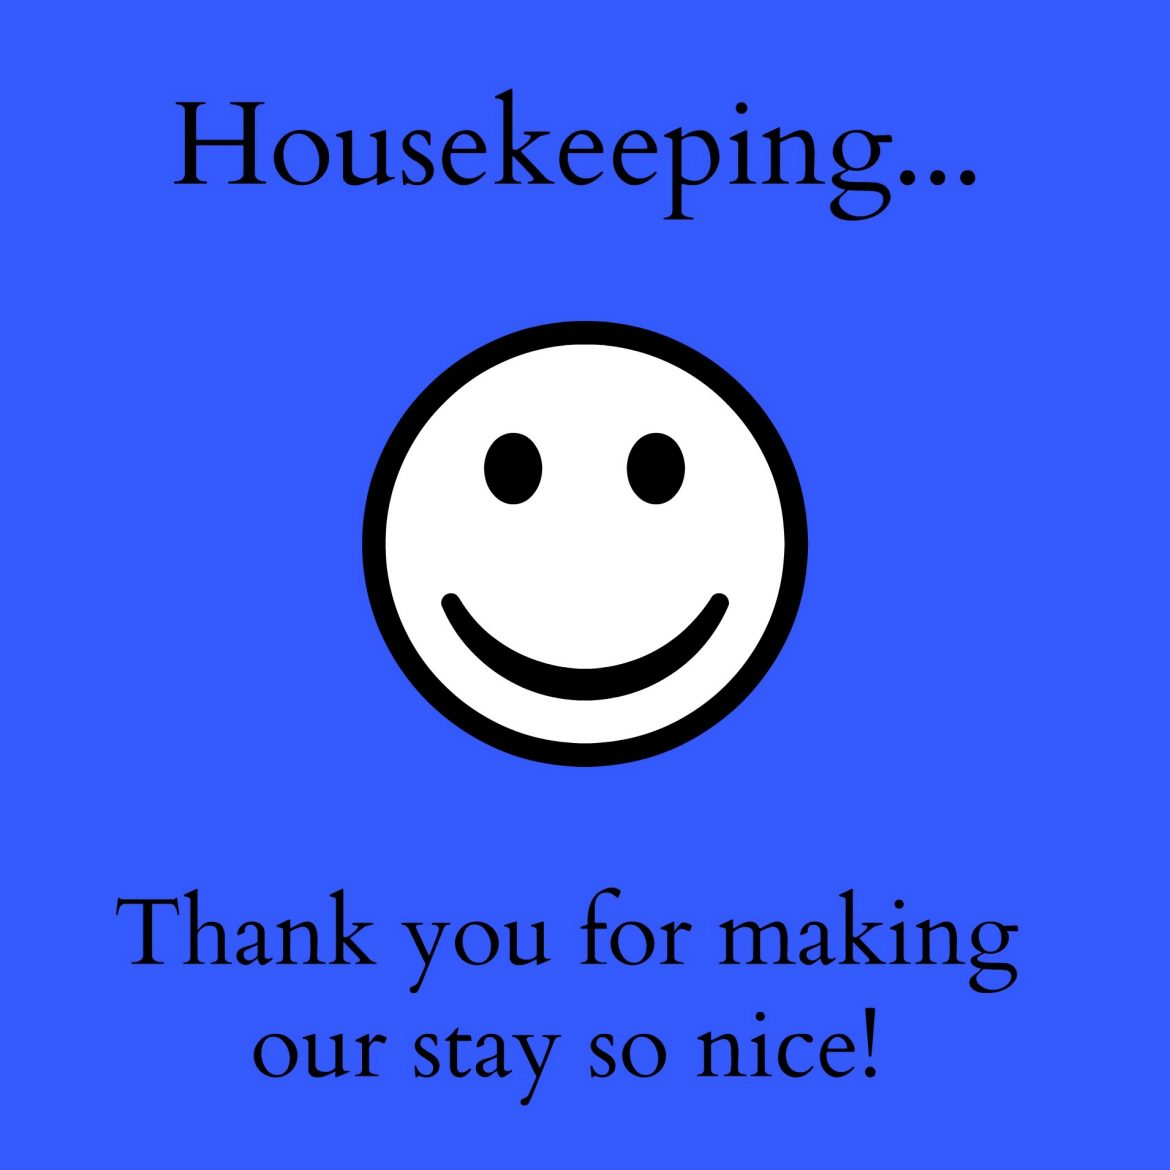 Thank you housekeeping 4